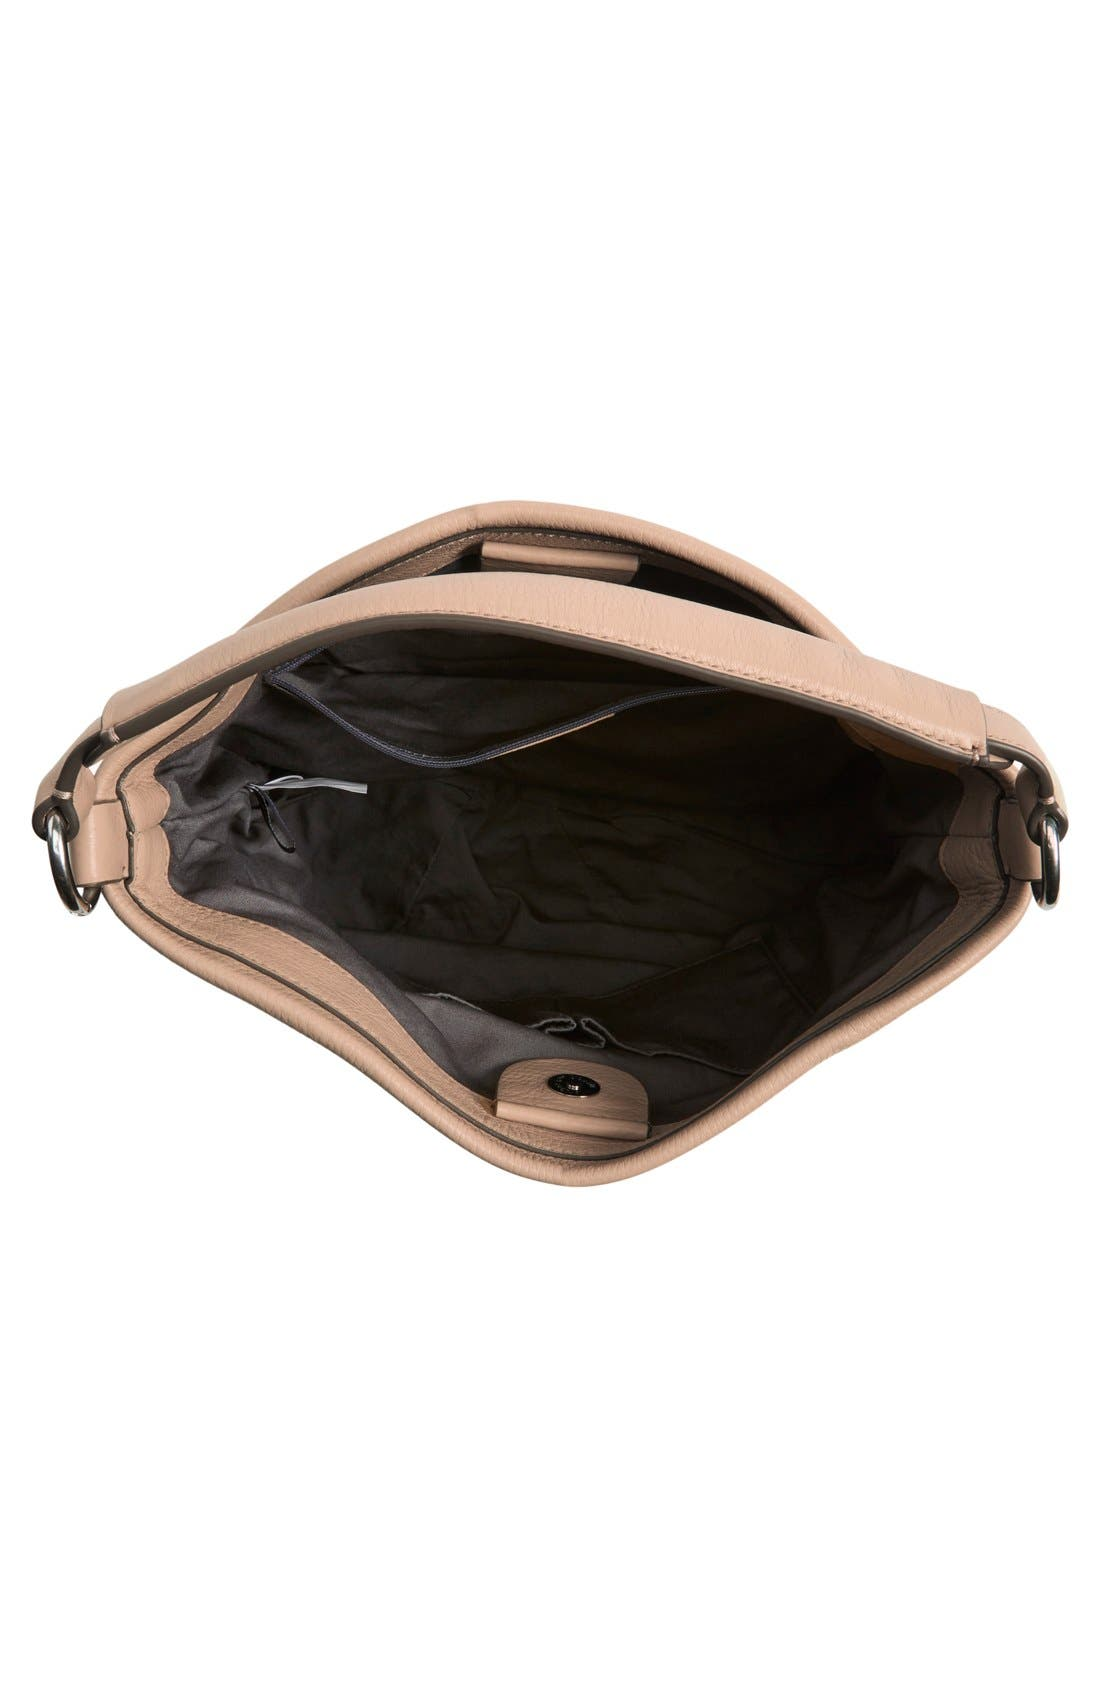 MARC BY MARC JACOBS 'New Q Hillier' Hobo,                             Alternate thumbnail 4, color,                             Cameo Nude